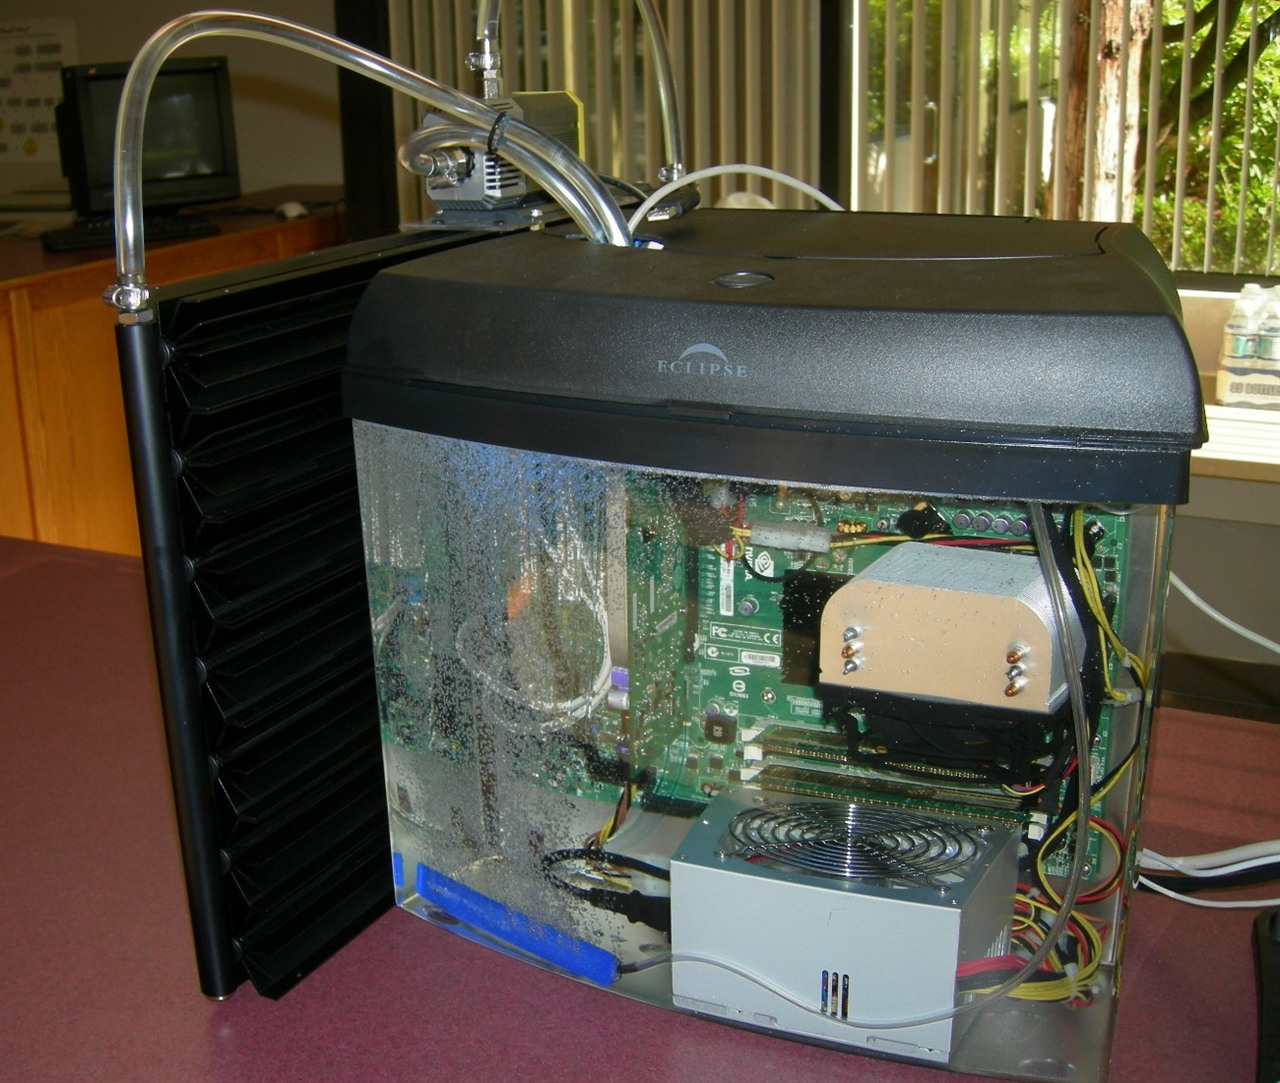 Fish Tank PC with Radiator